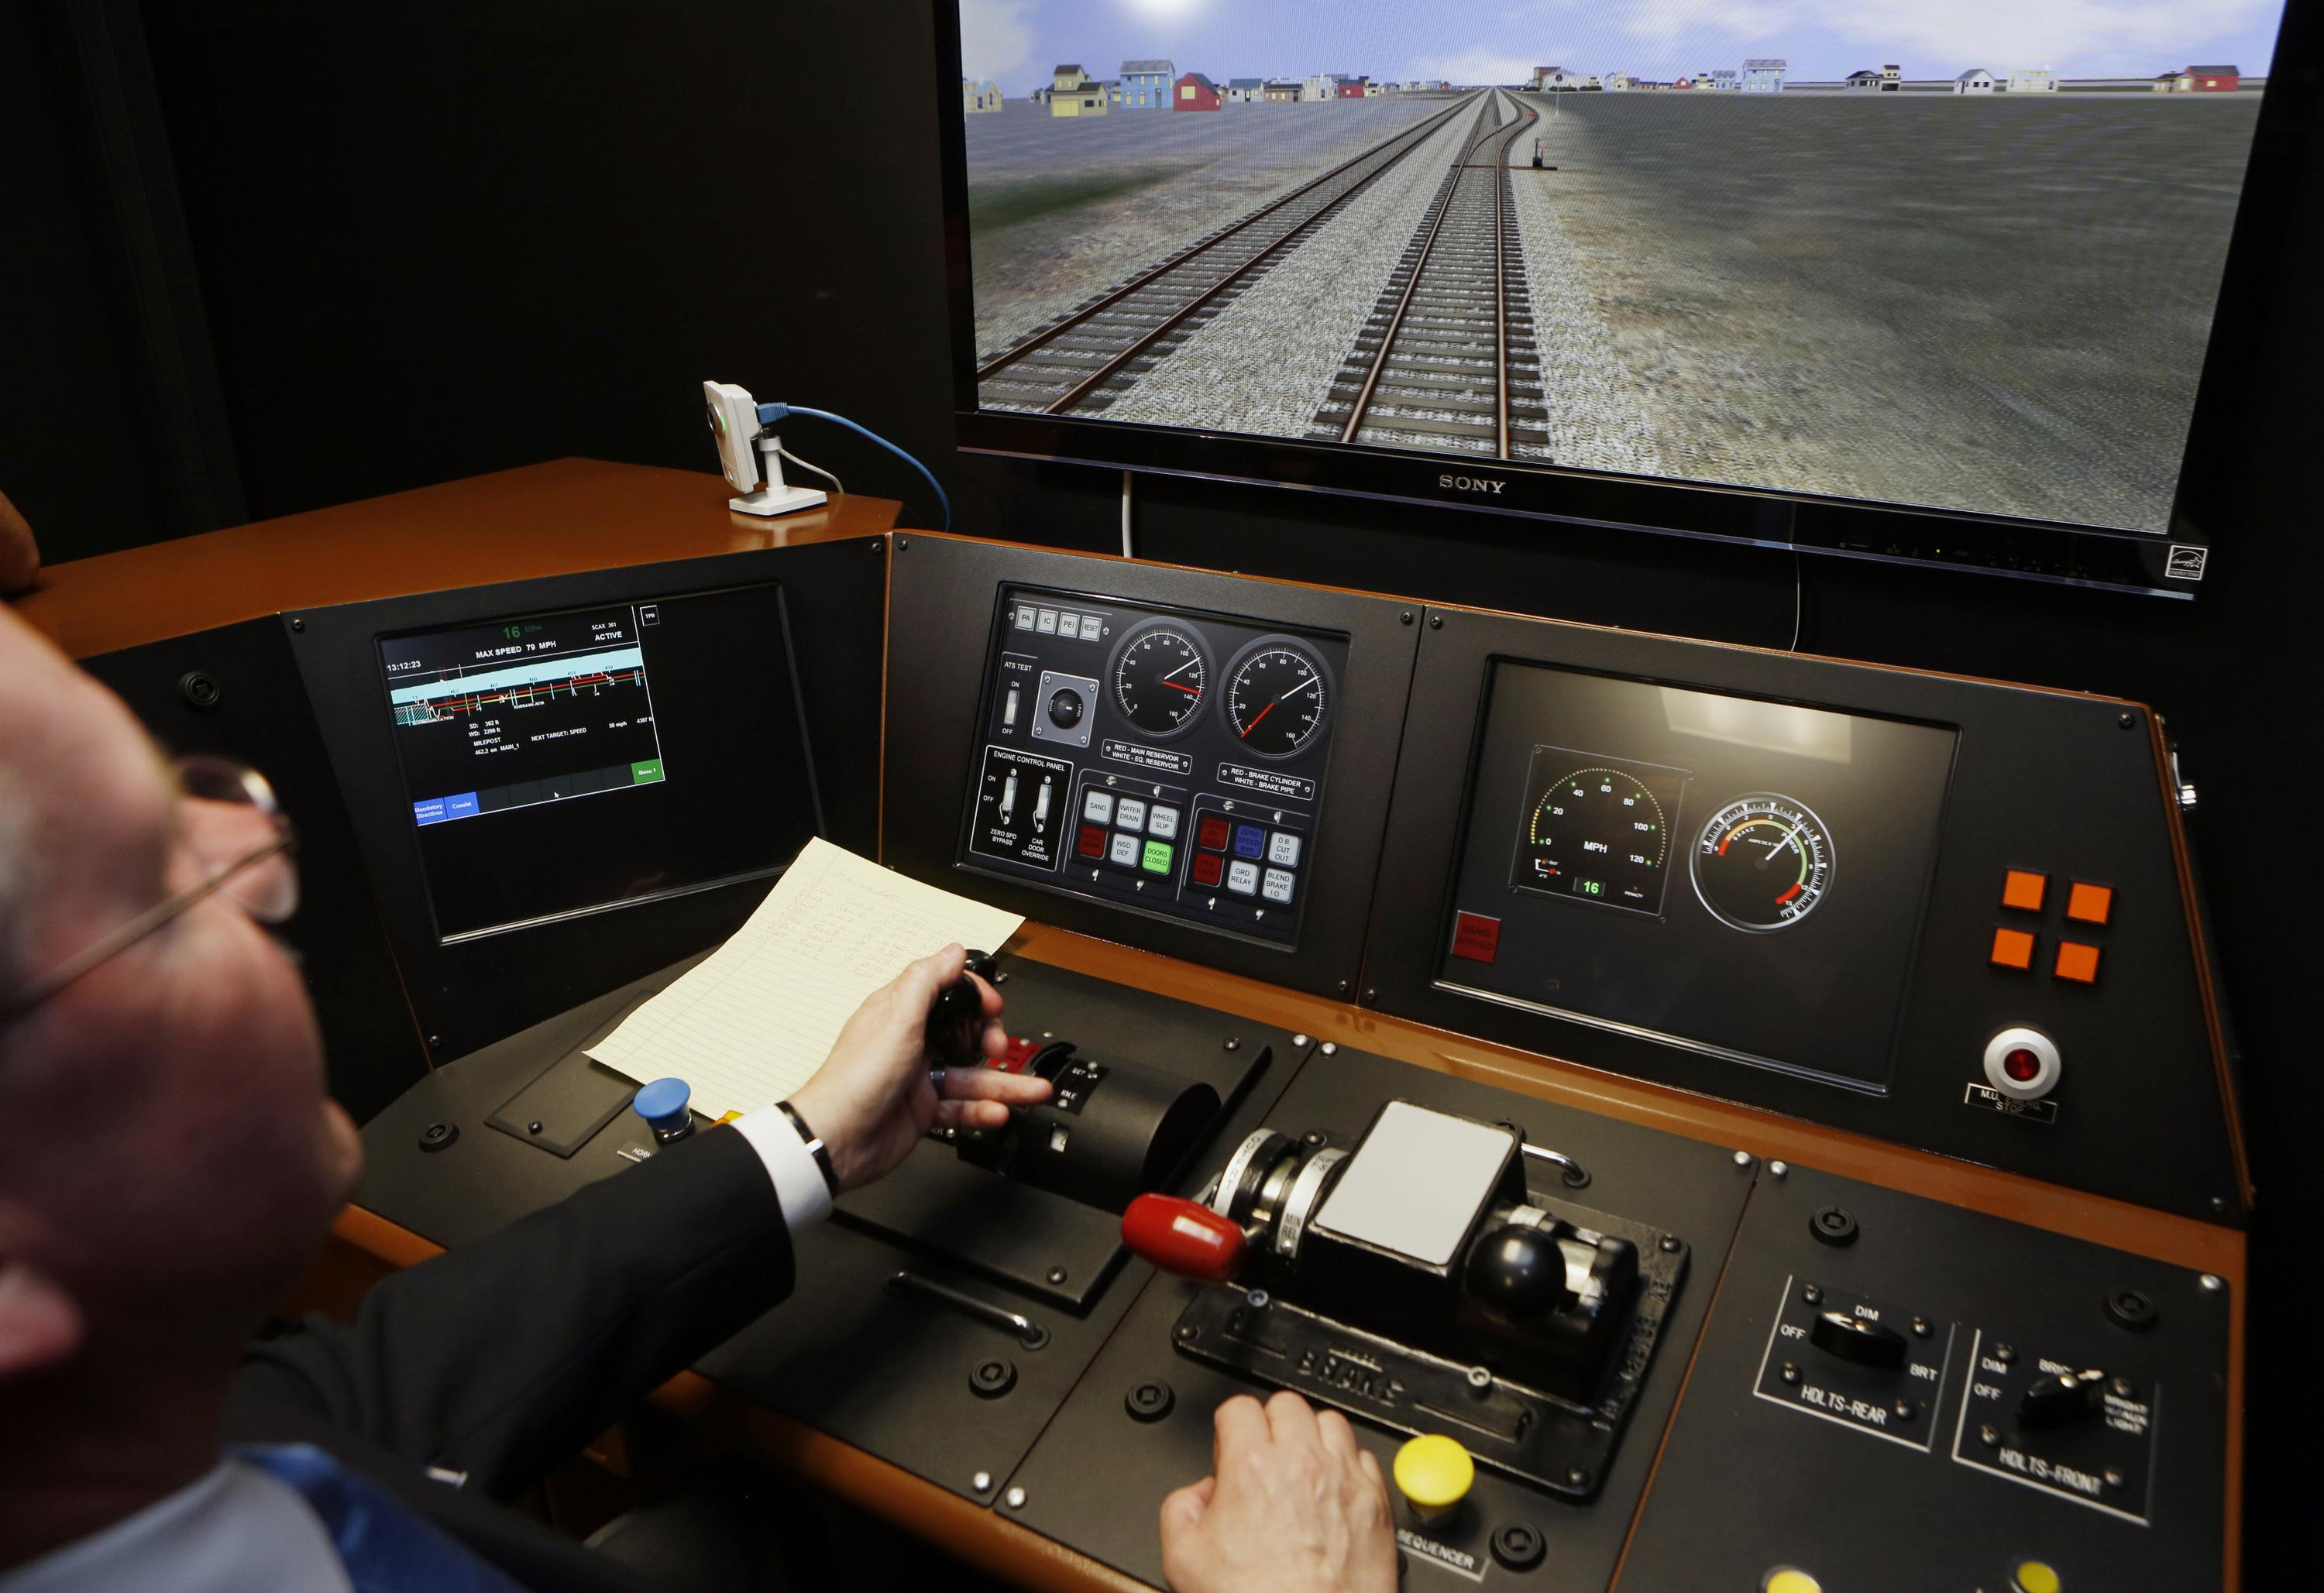 Crew cuts: Railroad technology reduces labor costs, improves safety